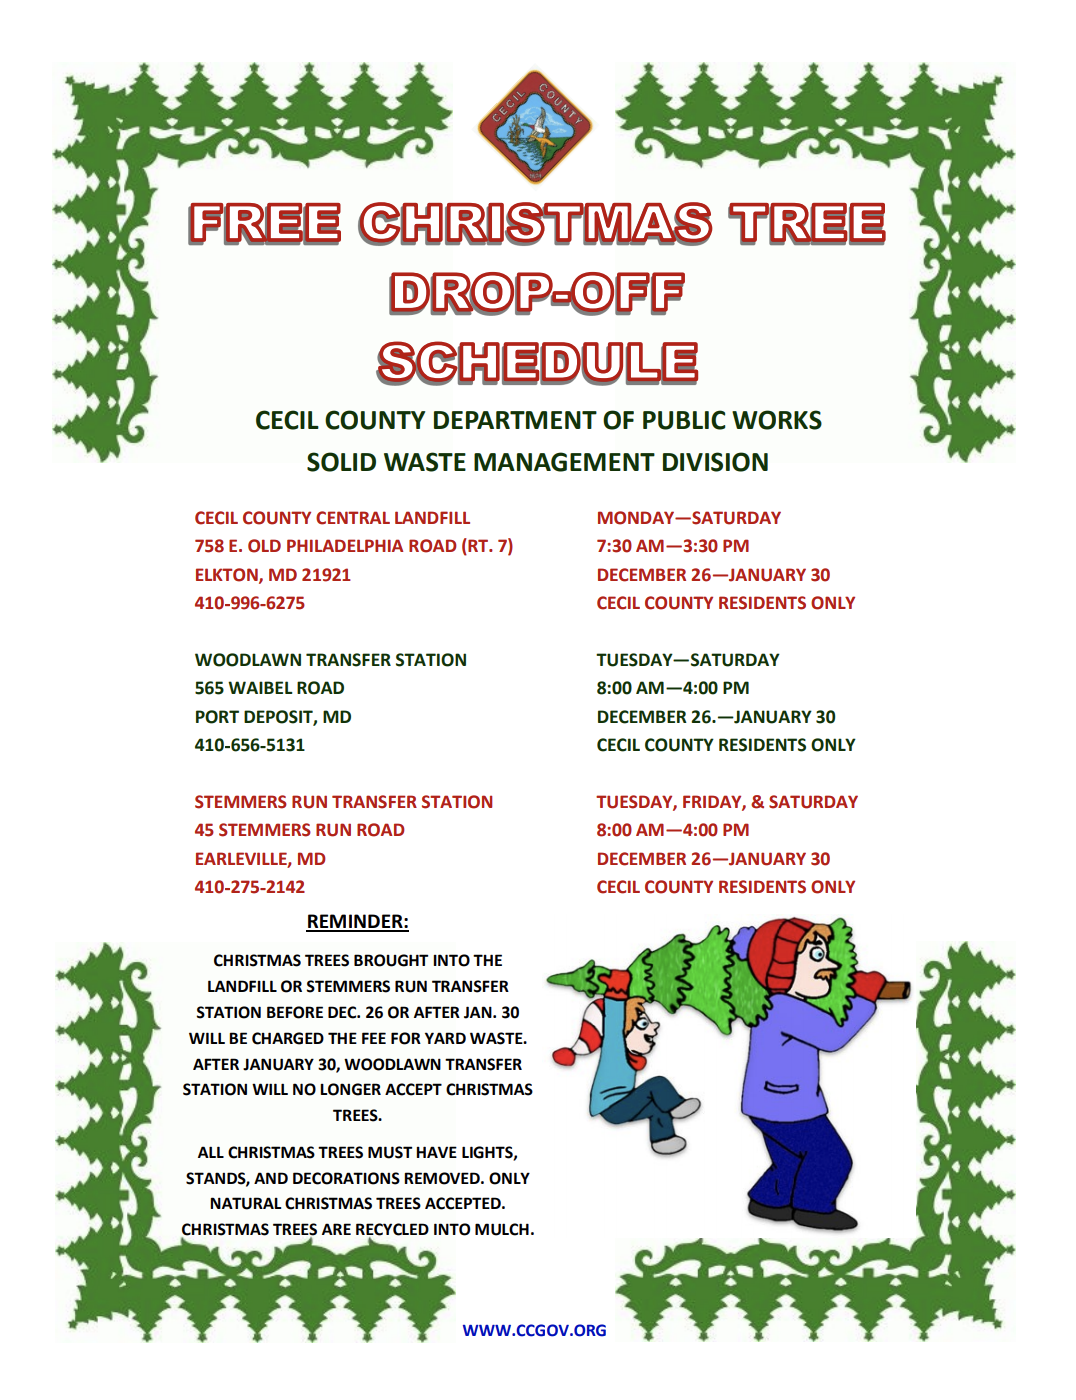 Clarksburg Trash Pickup On Christmas Eve 2021 Maryland Christmas Tree Recycling Information By County Md Realtor